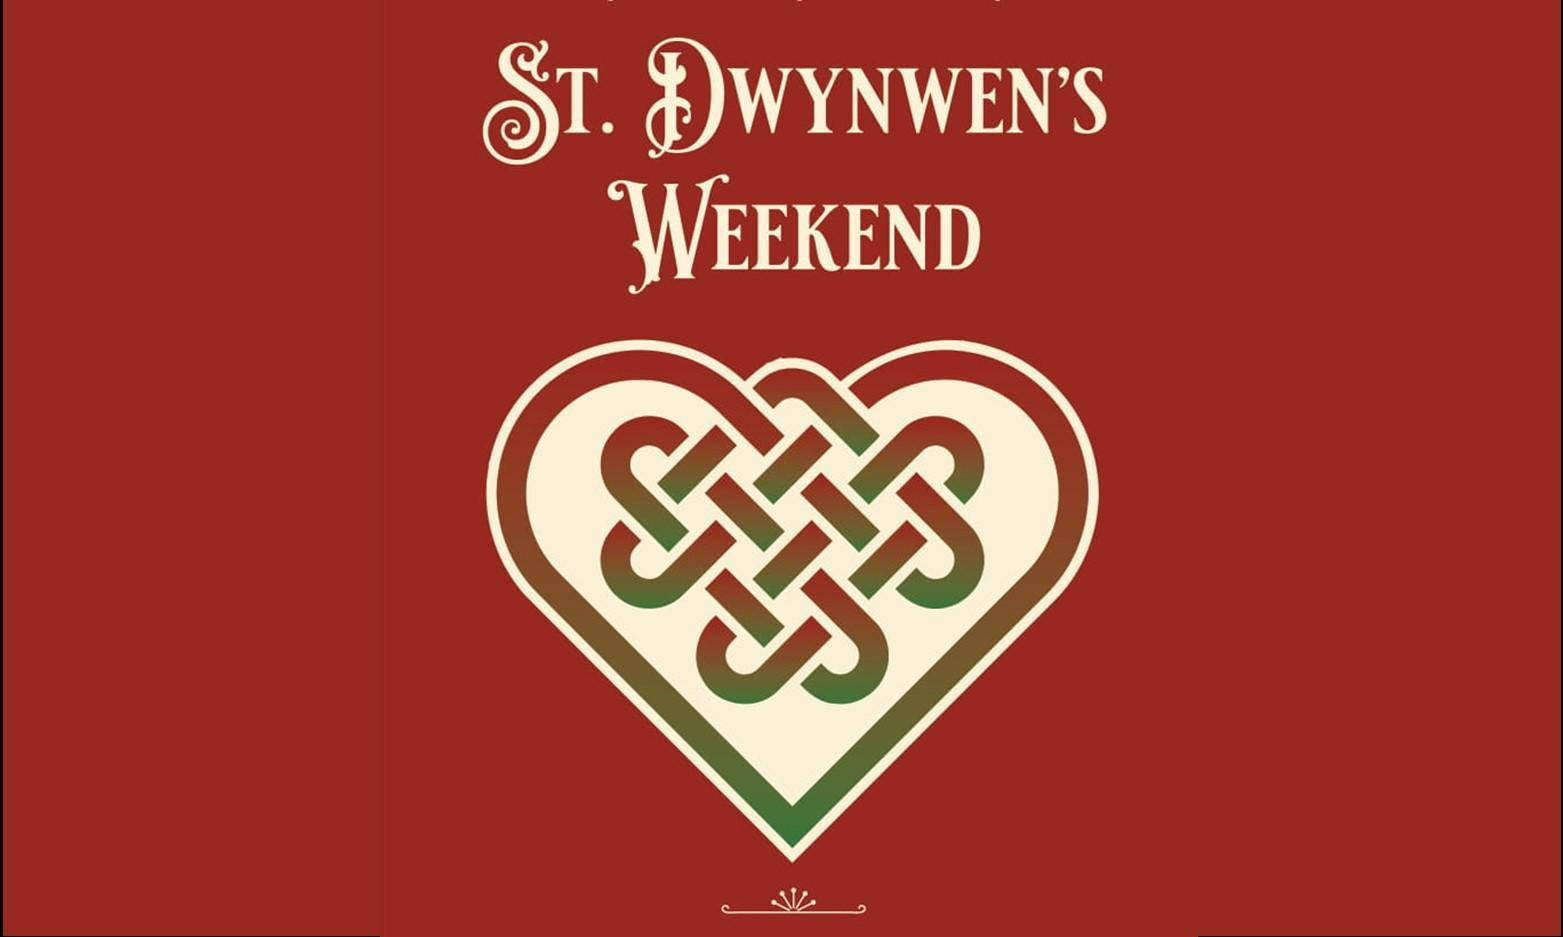 St Dwynwen's Weekend at Gower Heritage Centre